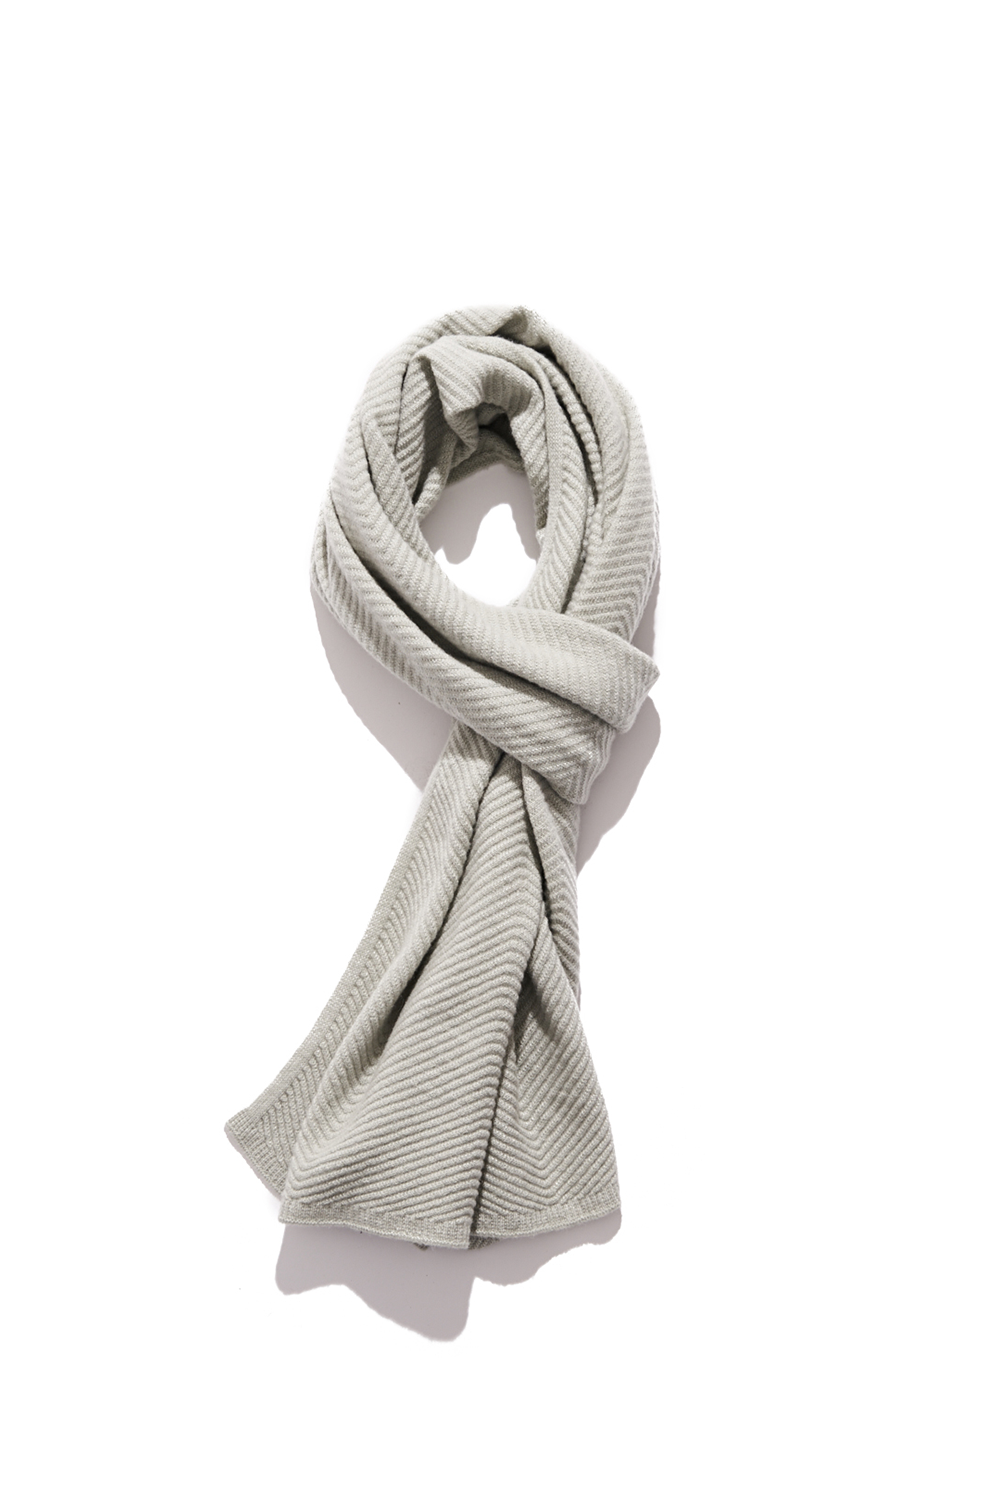 Premium pure cashmere100 whole-garment knitting shawl and scarf - Sage mint (품절 임박)